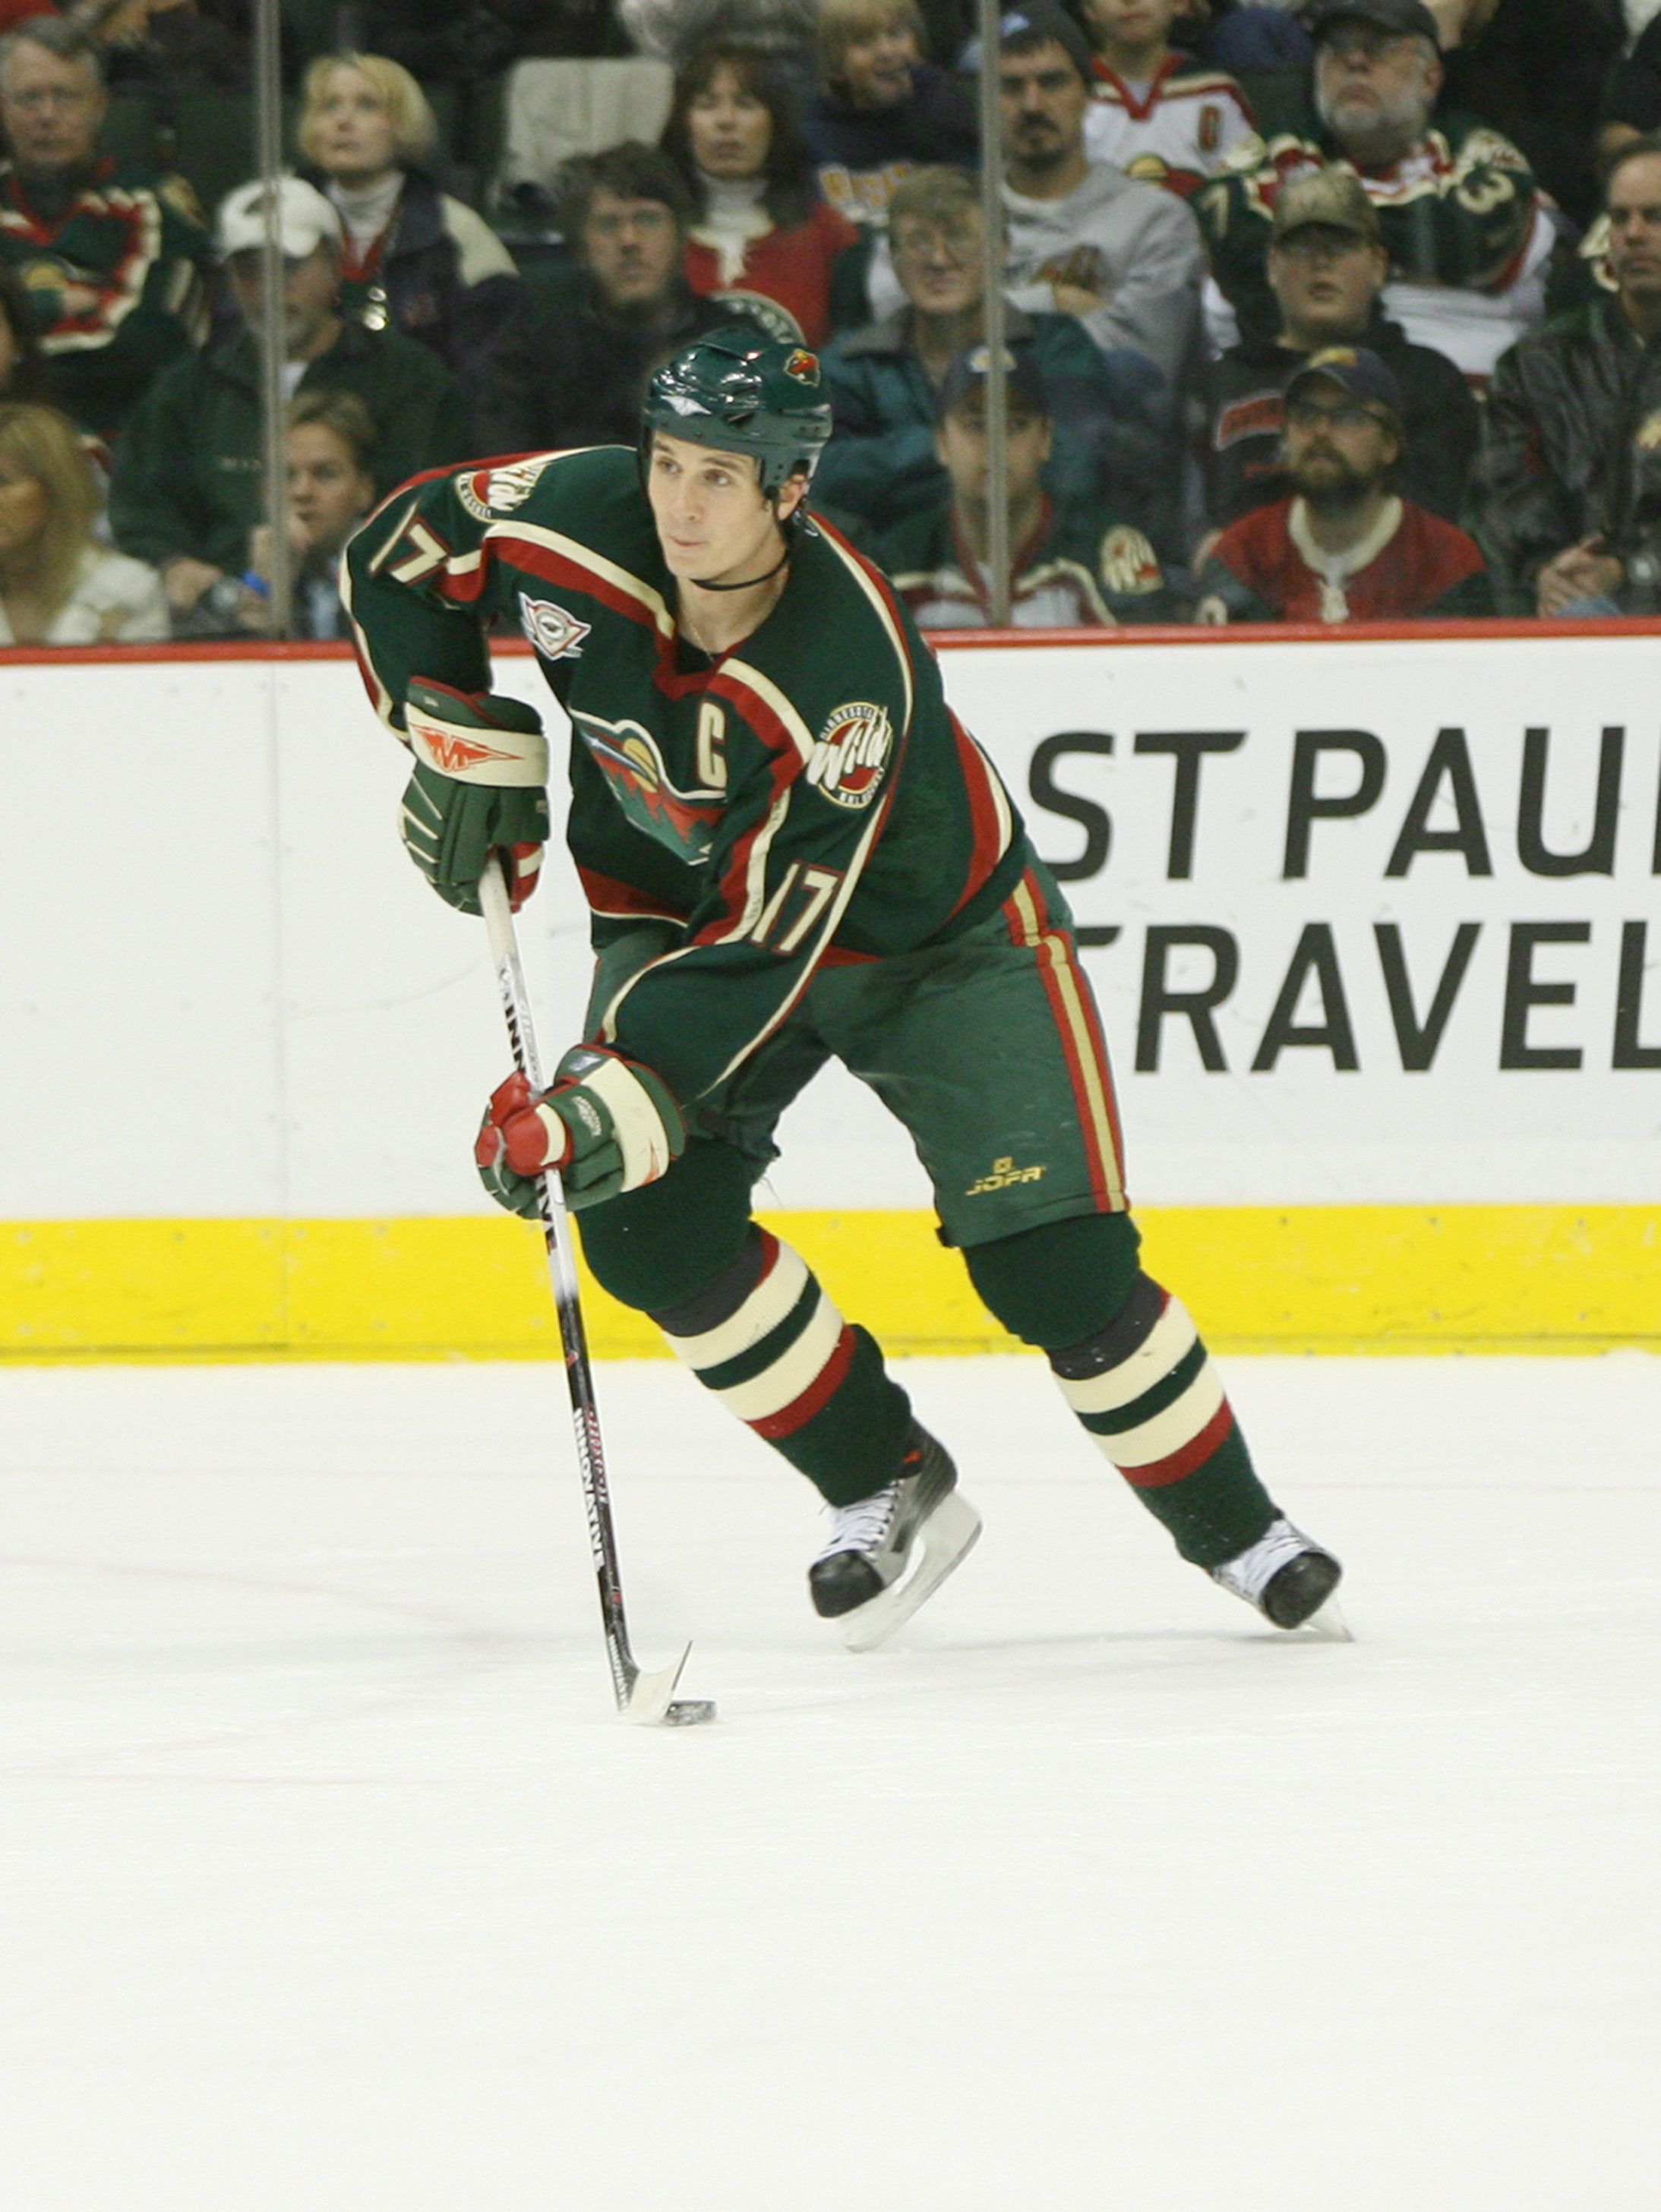 SAINT PAUL, MN - NOVEMBER 23:  Defenseman Filip Kuba #17 of the Minnesota Wild skates with the puck against the Edmonton Oilers at Xcel Energy Center on November 23, 2005 in Saint Paul, Minnesota.  The Oilers defeated the Wild 4-3. (Photo by David Sherman